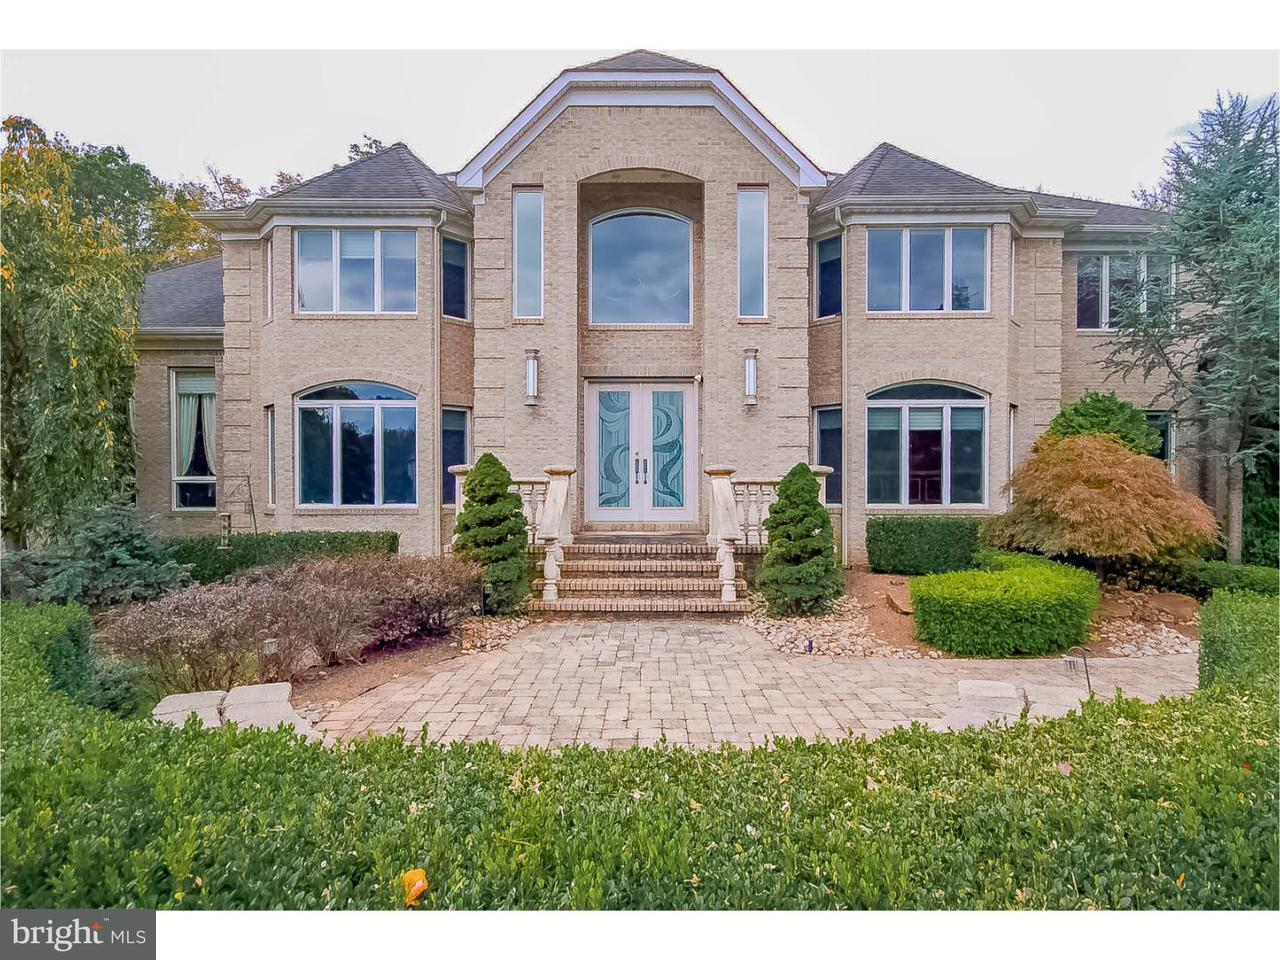 Single Family Home for Sale at 3 BEECHWOOD Lane Millstone, New Jersey 08535 United States